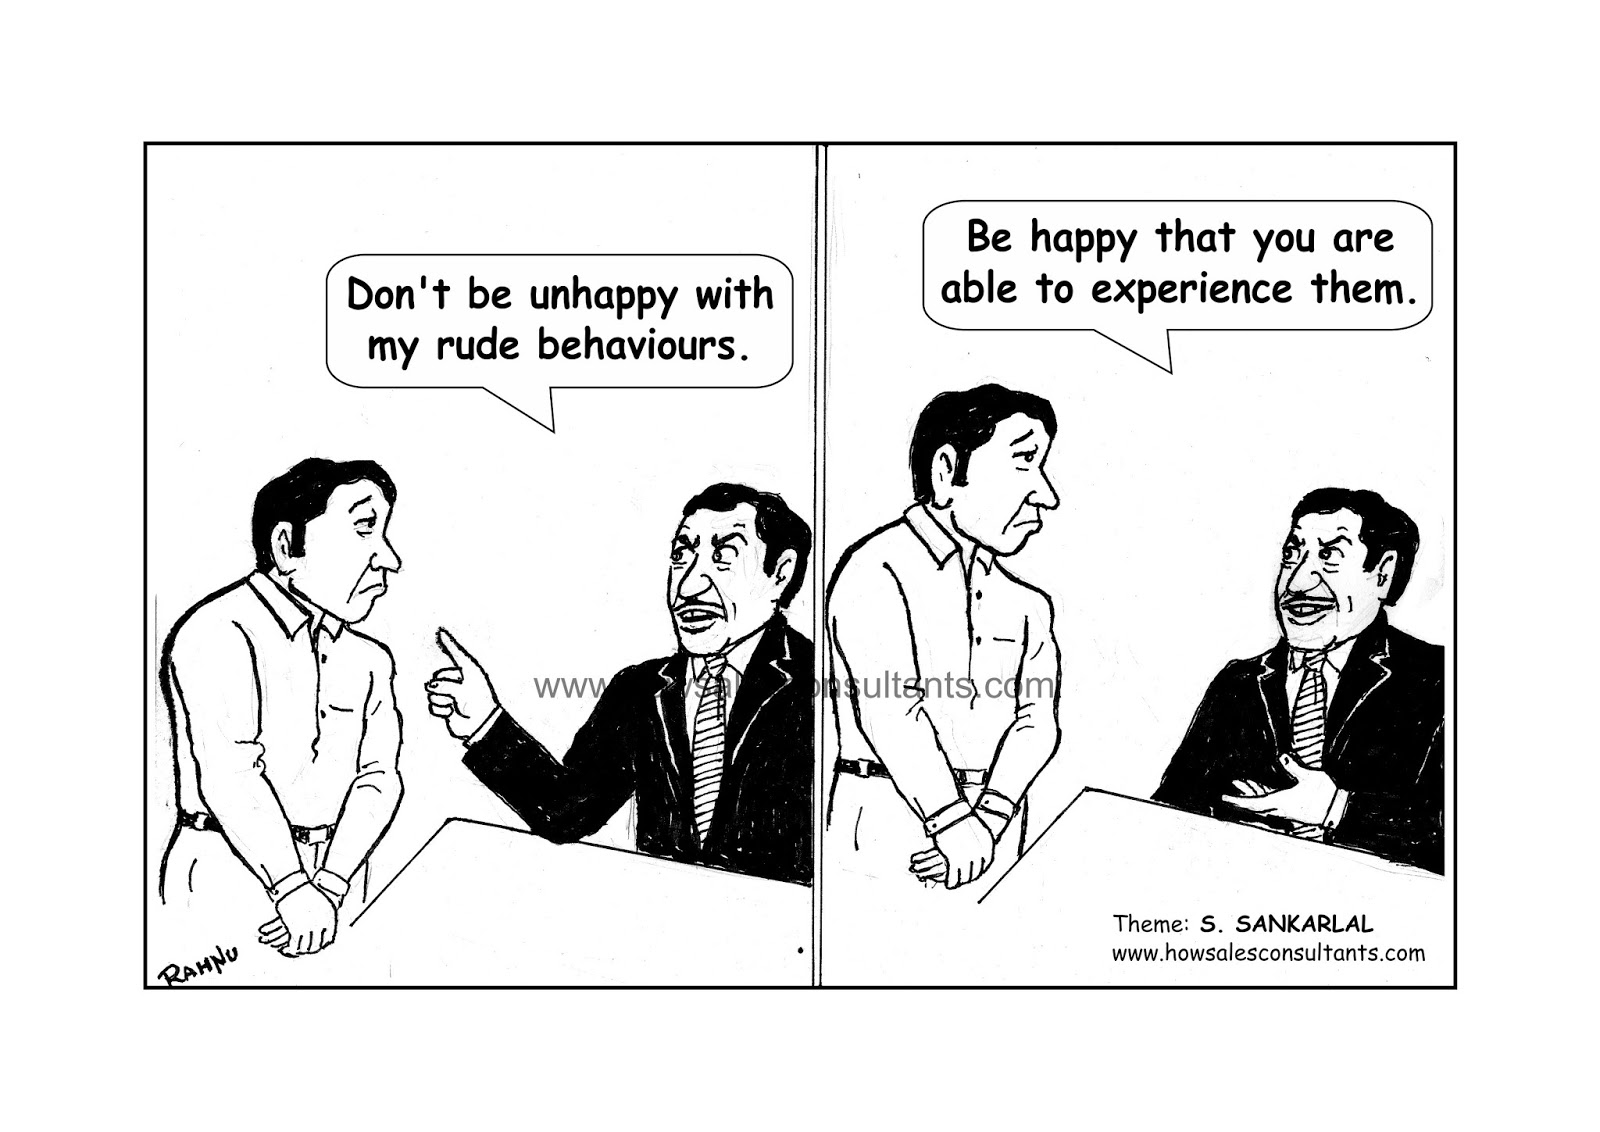 Sankarlal's Cartoons: Taking things positively